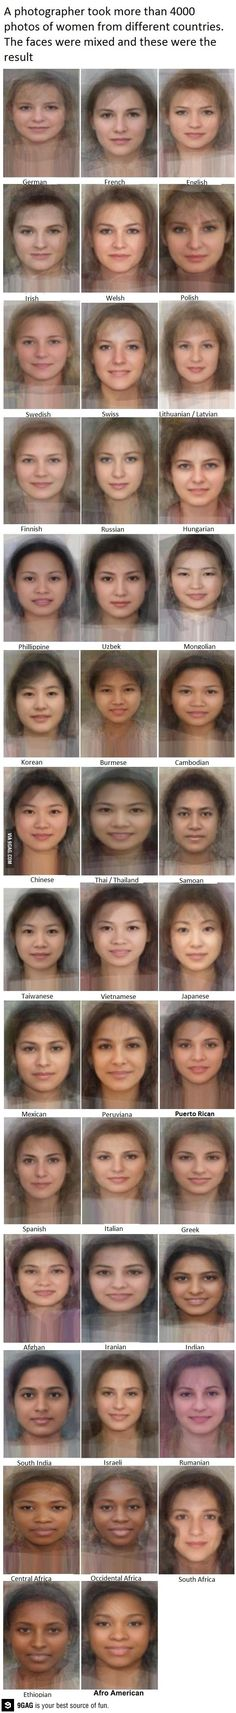 wow, so interesting! Average face from women from different countries